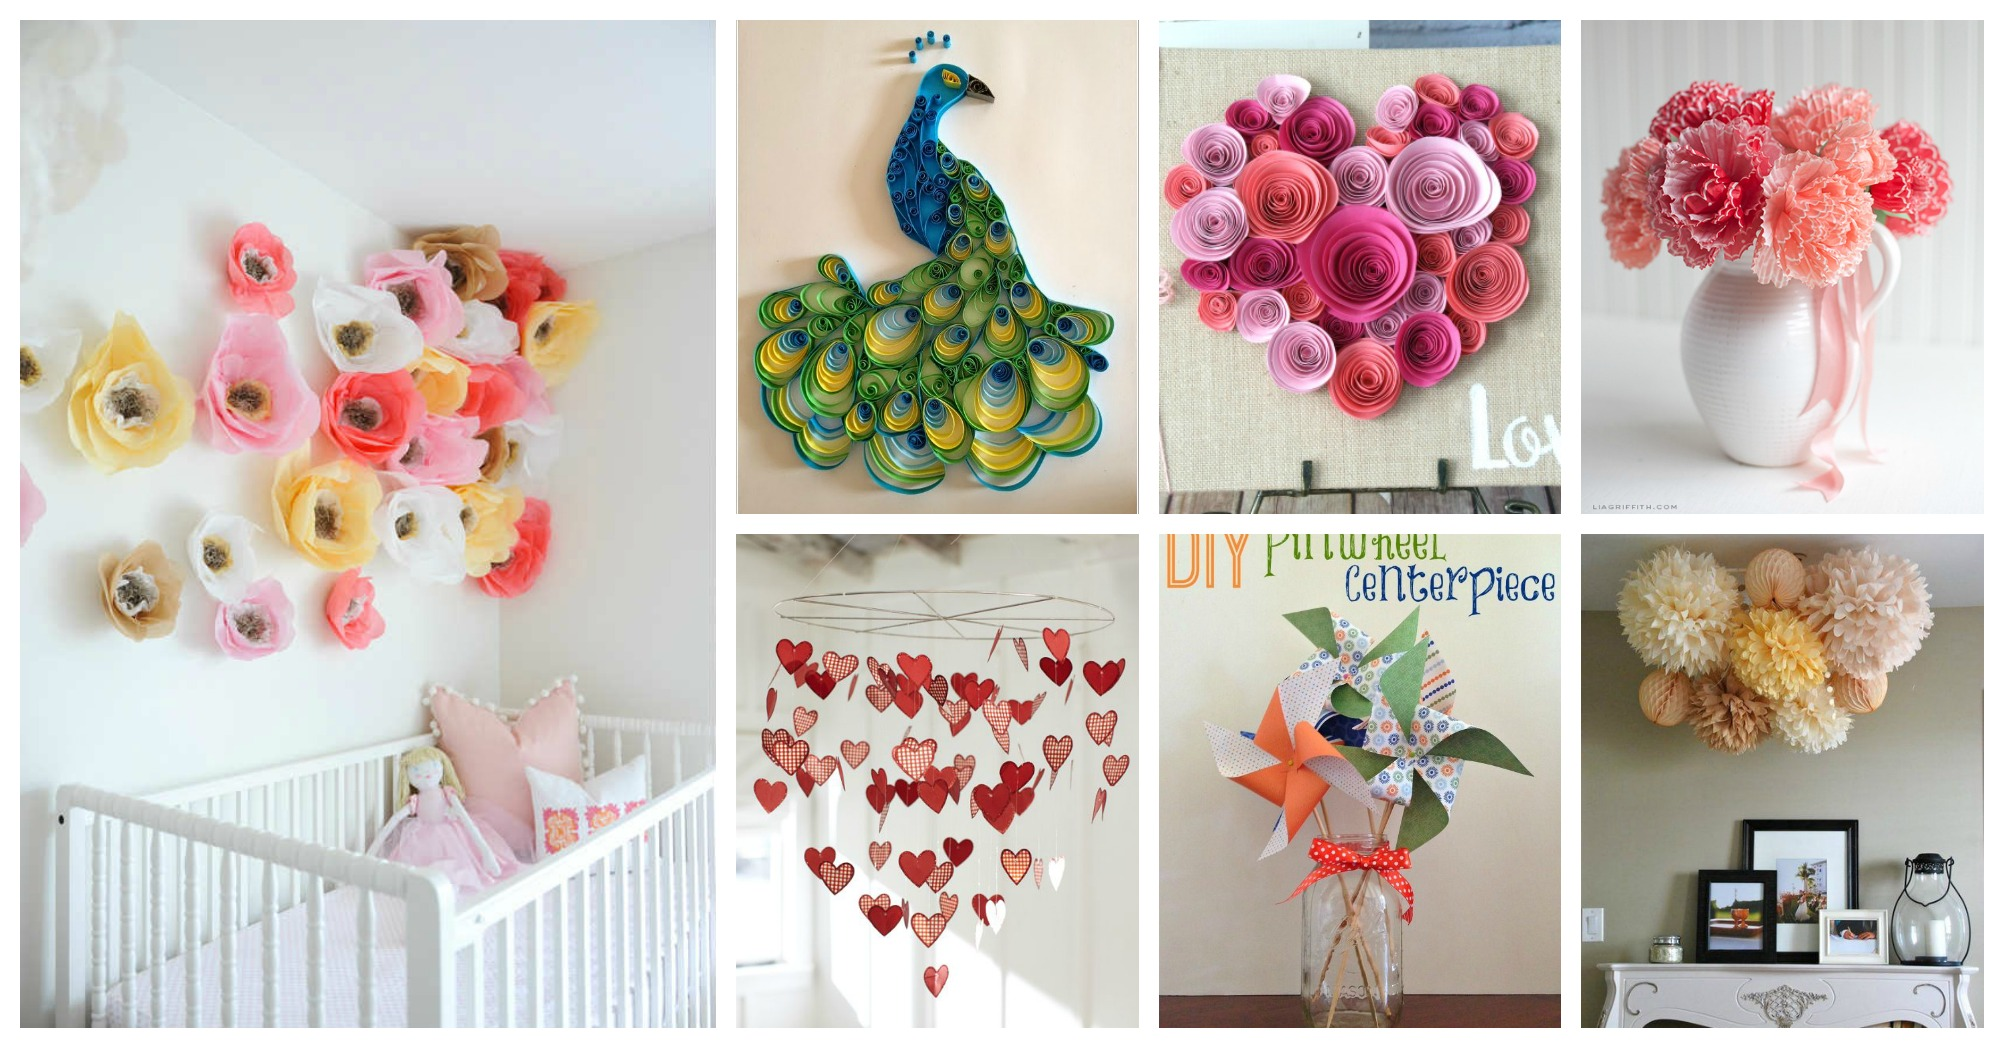 Playful Diy Paper Crafts That Will Make Your Home Cheerful